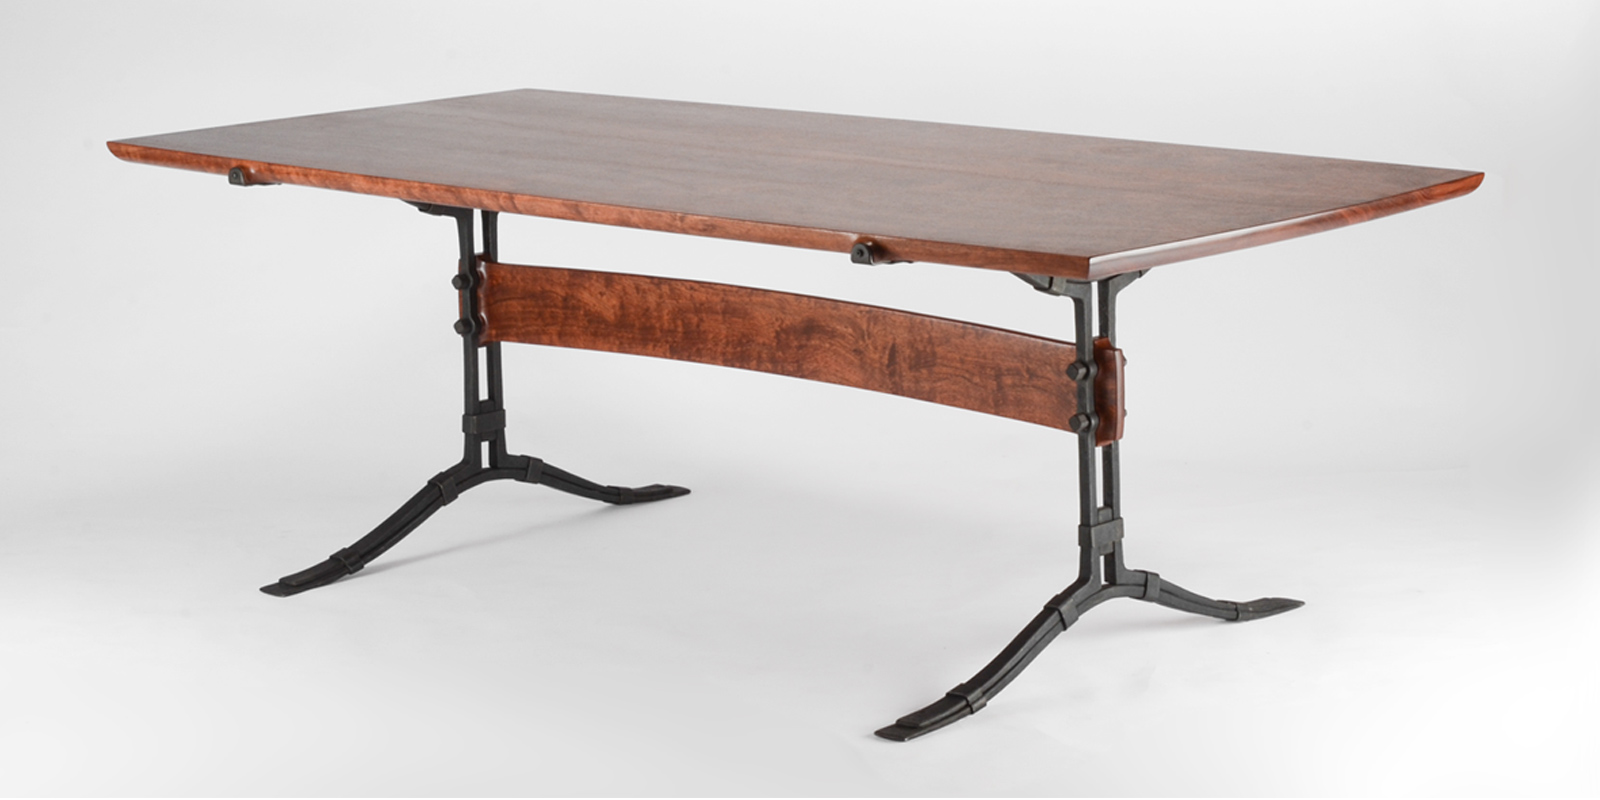 Our handmade Salin Trestle Table w/ hand-forged iron